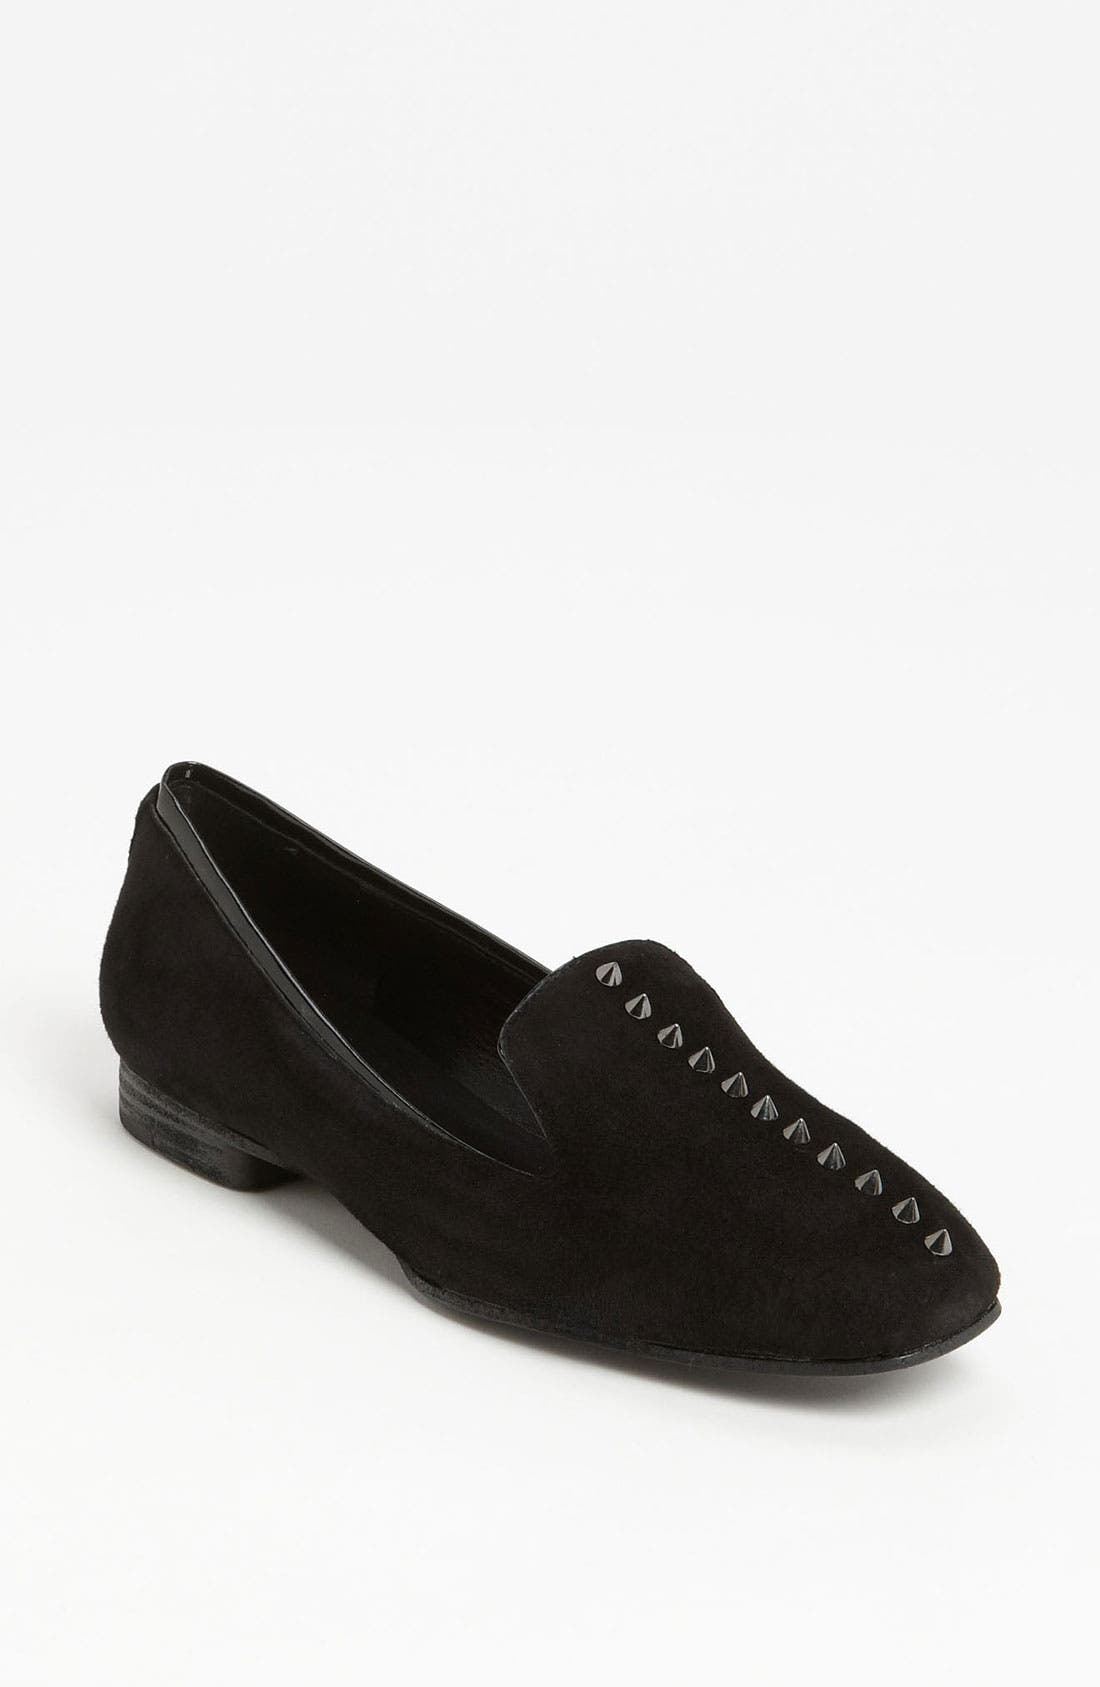 Alternate Image 1 Selected - Belle by Sigerson Morrison 'Romona' Flat